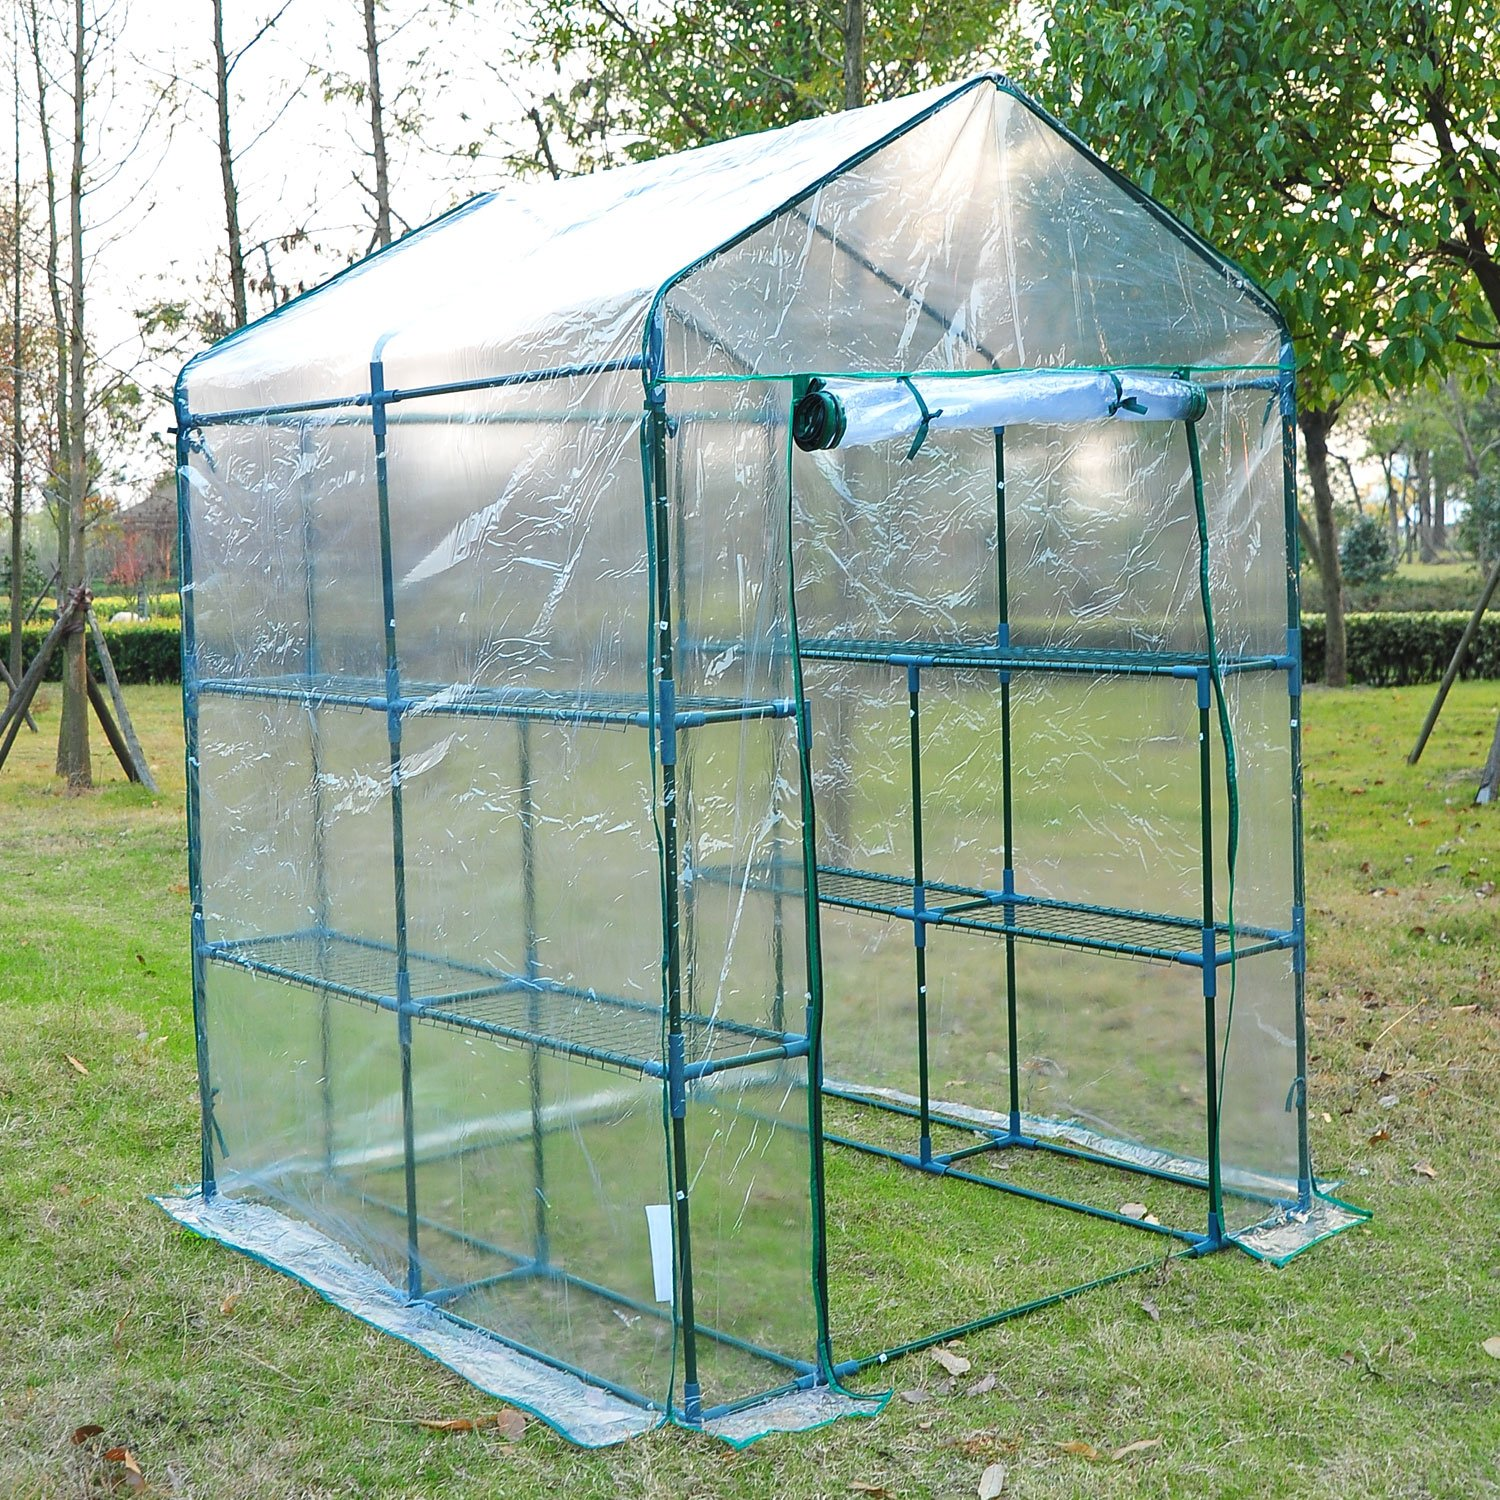 Portable Greenhouse With Heat : Zntogdfxl sl g